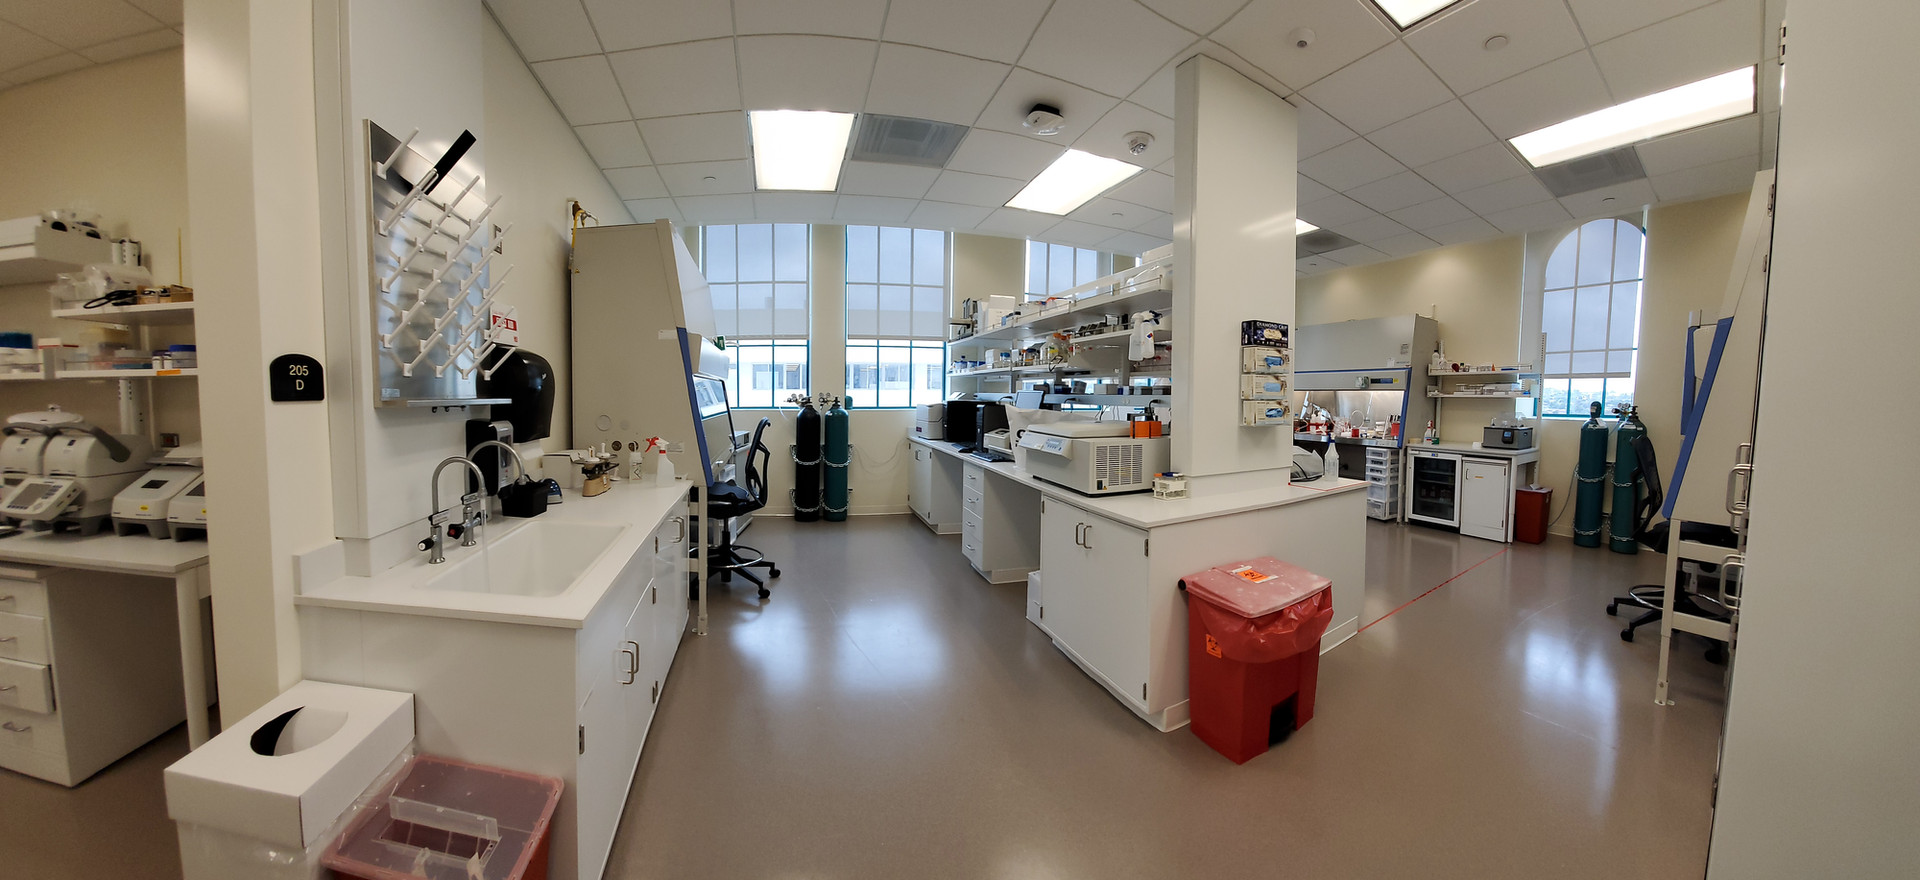 Our Tissue Culture Lab